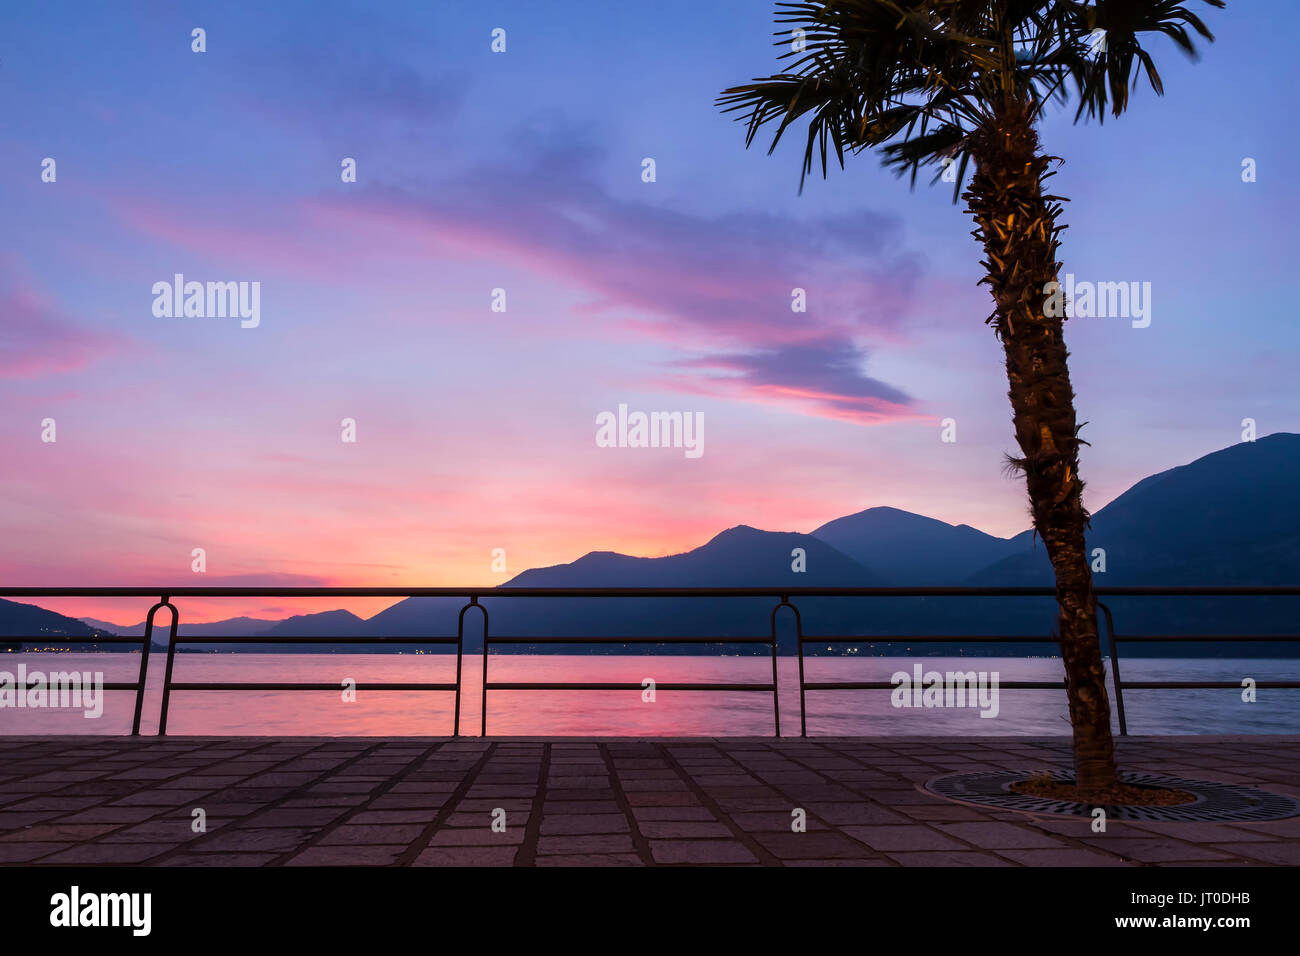 Beautiful foggy sunset at Iseo lake, Lombardy, Italy. View with palm-tree on enbankment street of Iseo city - Stock Image